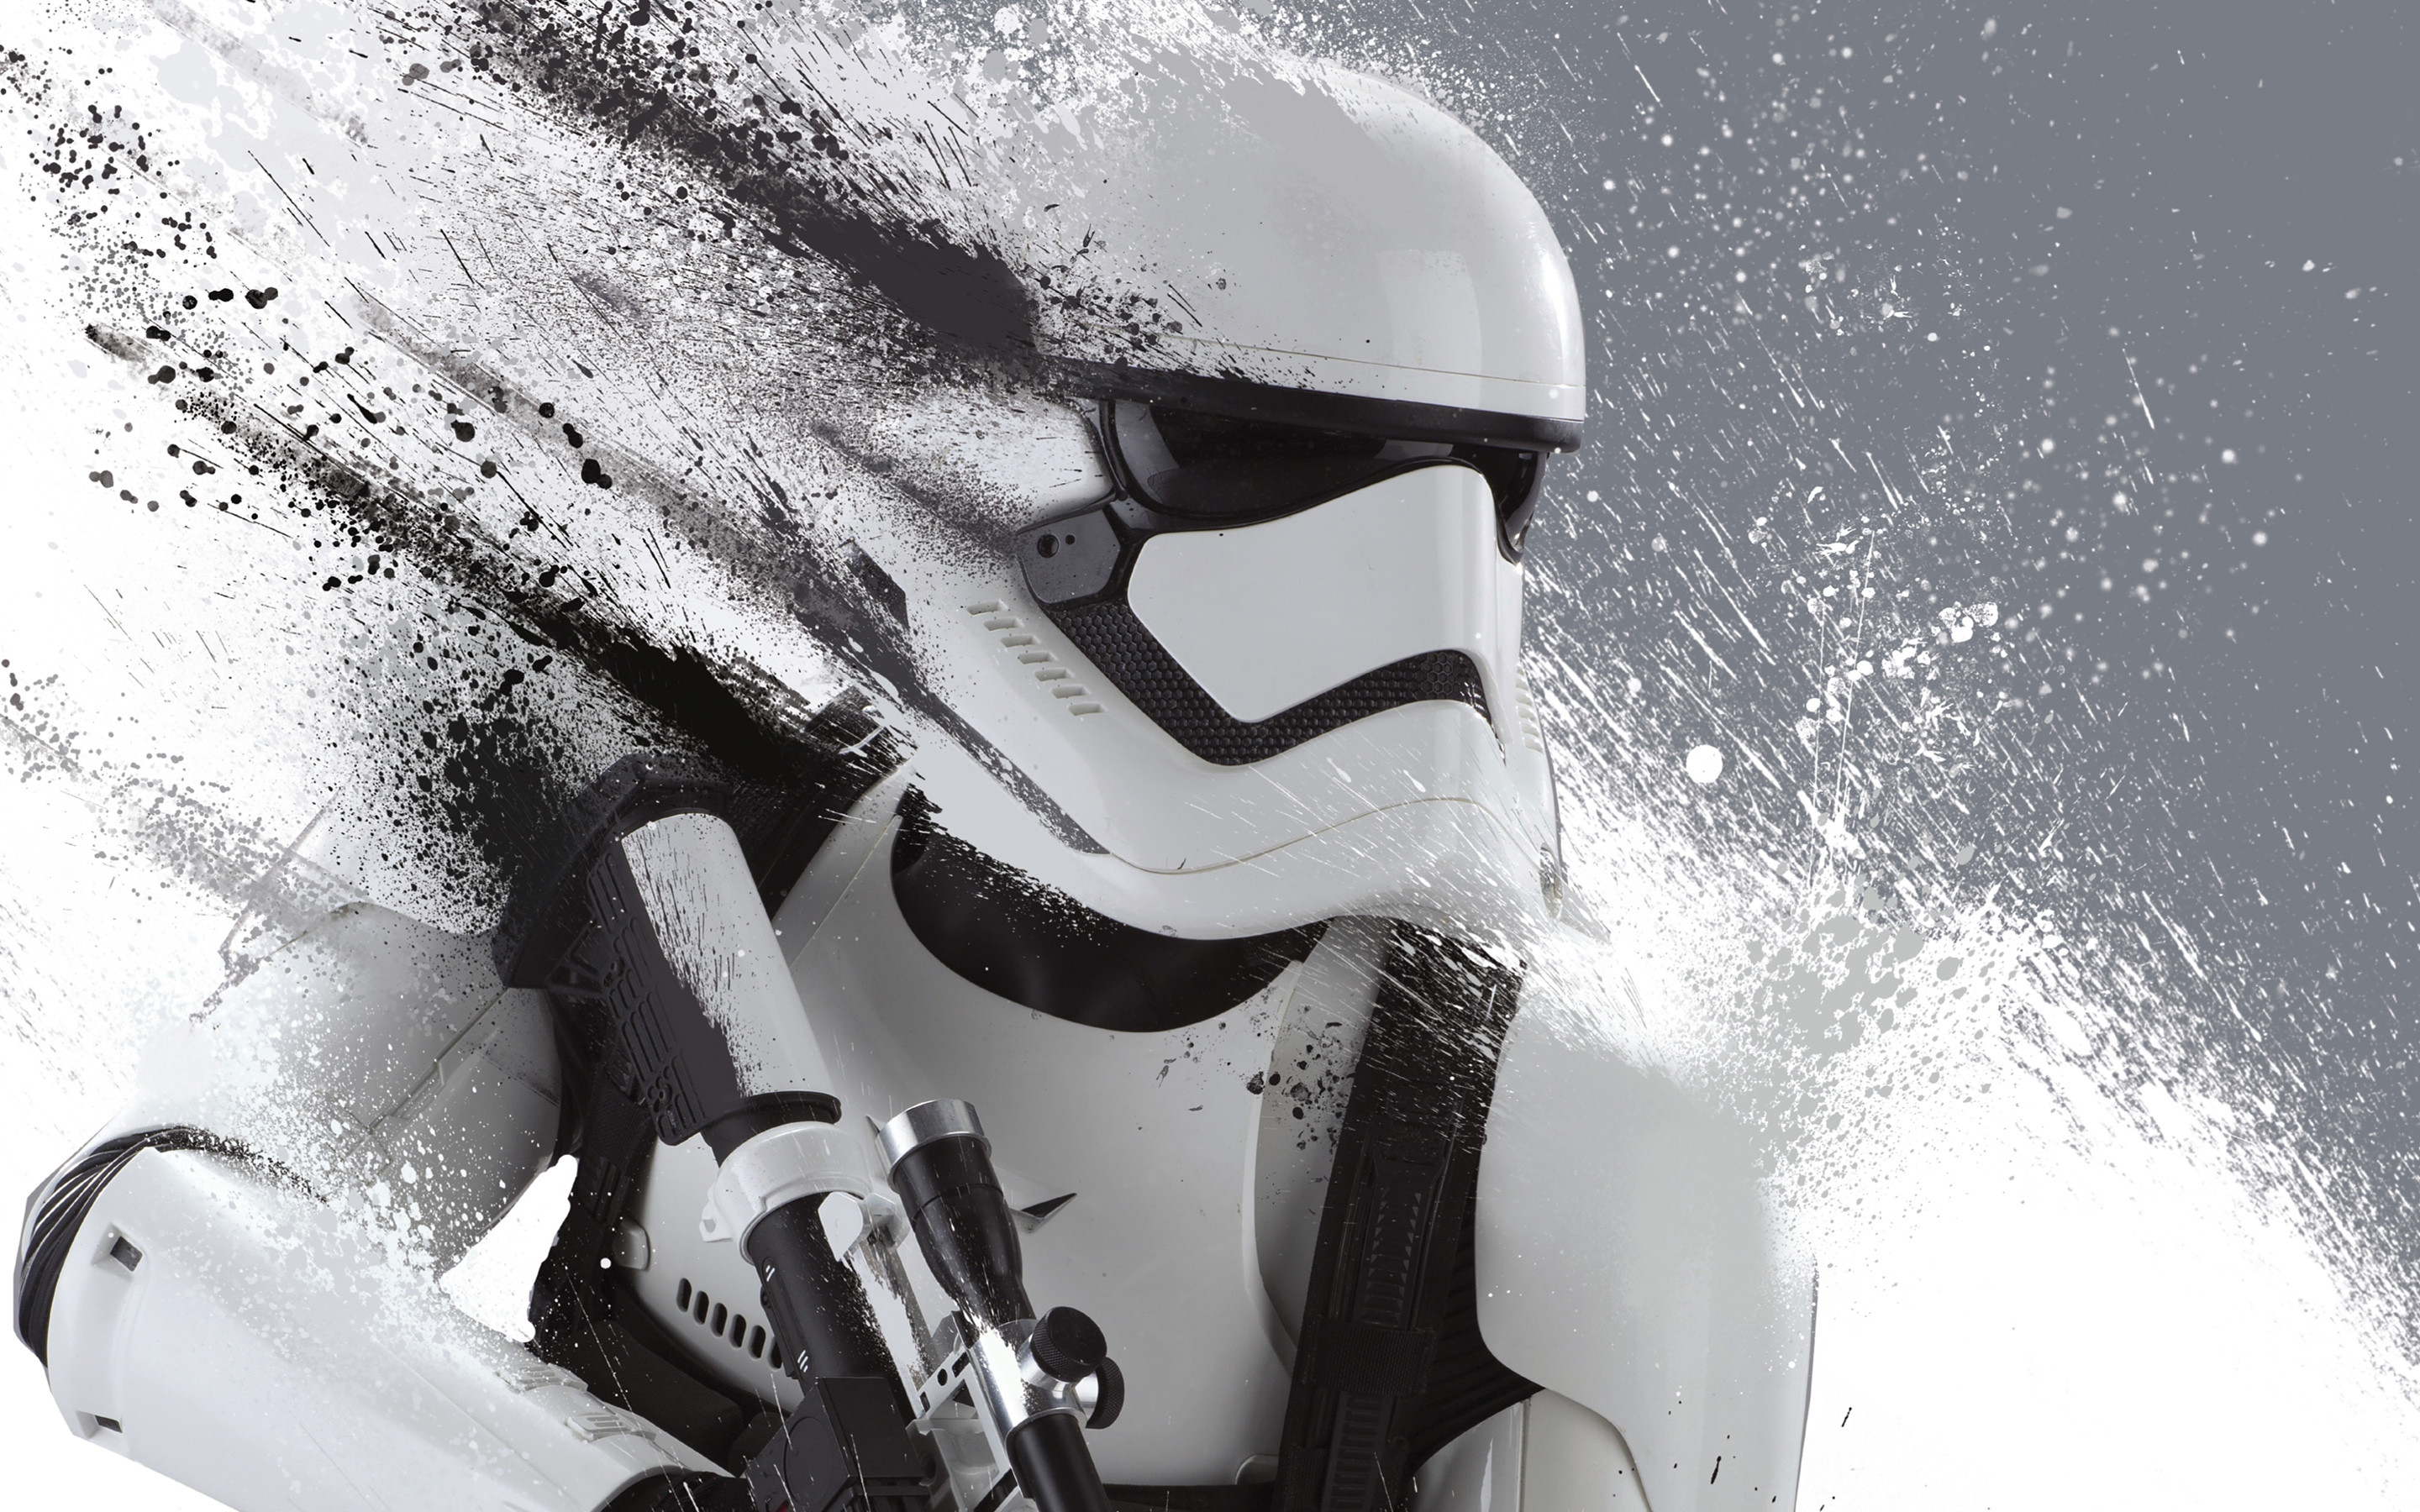 star wars hd wallpaper 1600x900 (62+ images)